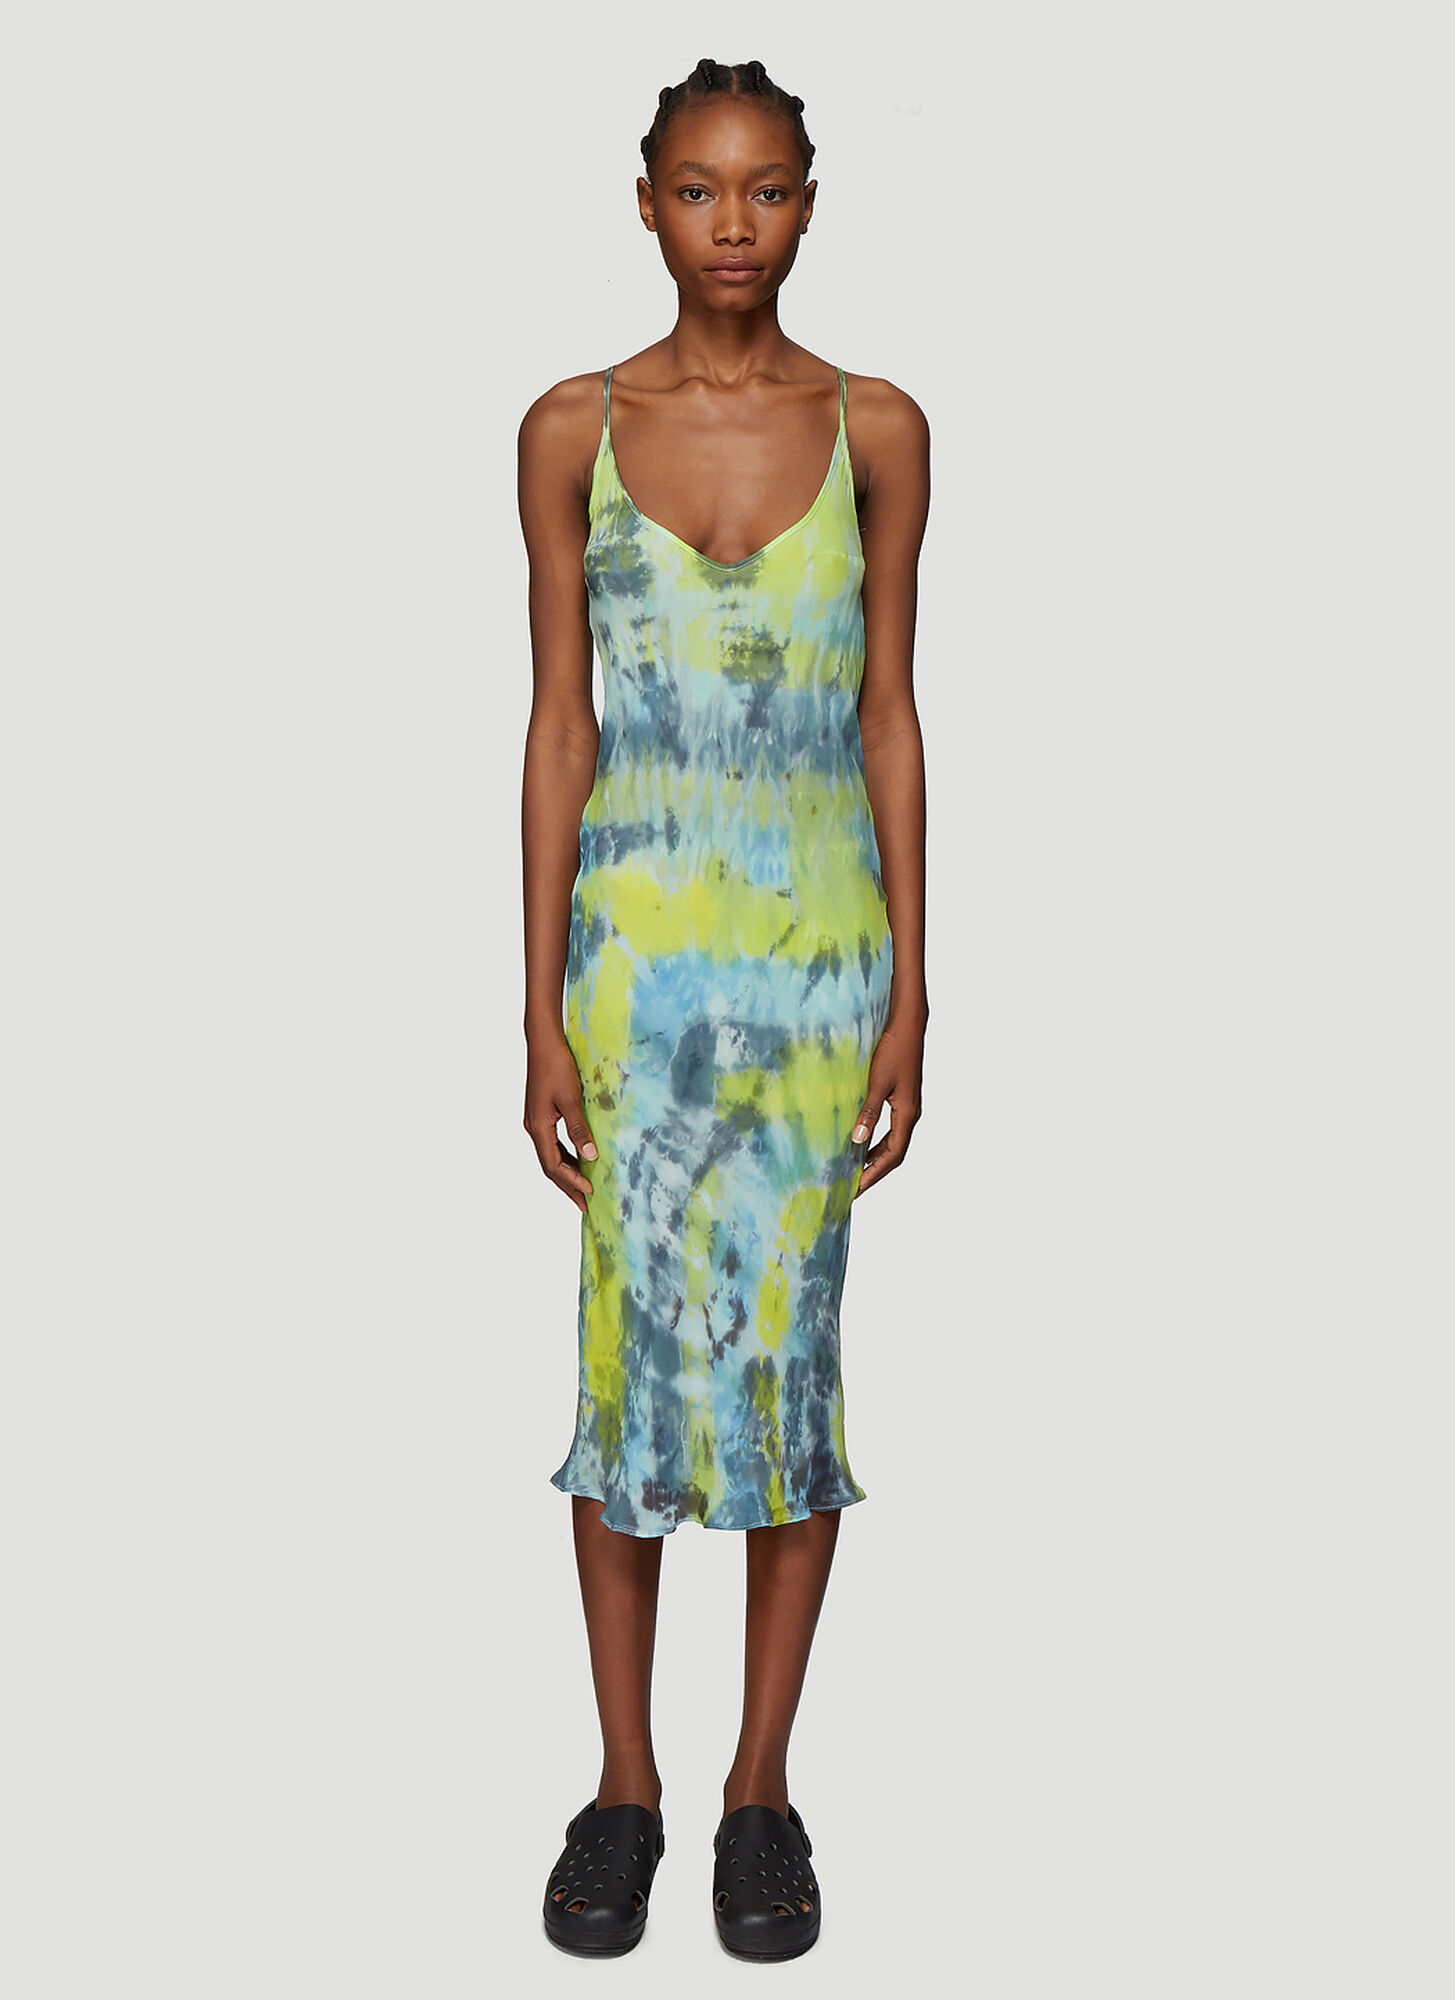 Collina Strada Tie Dye Barbarella Dress in Green